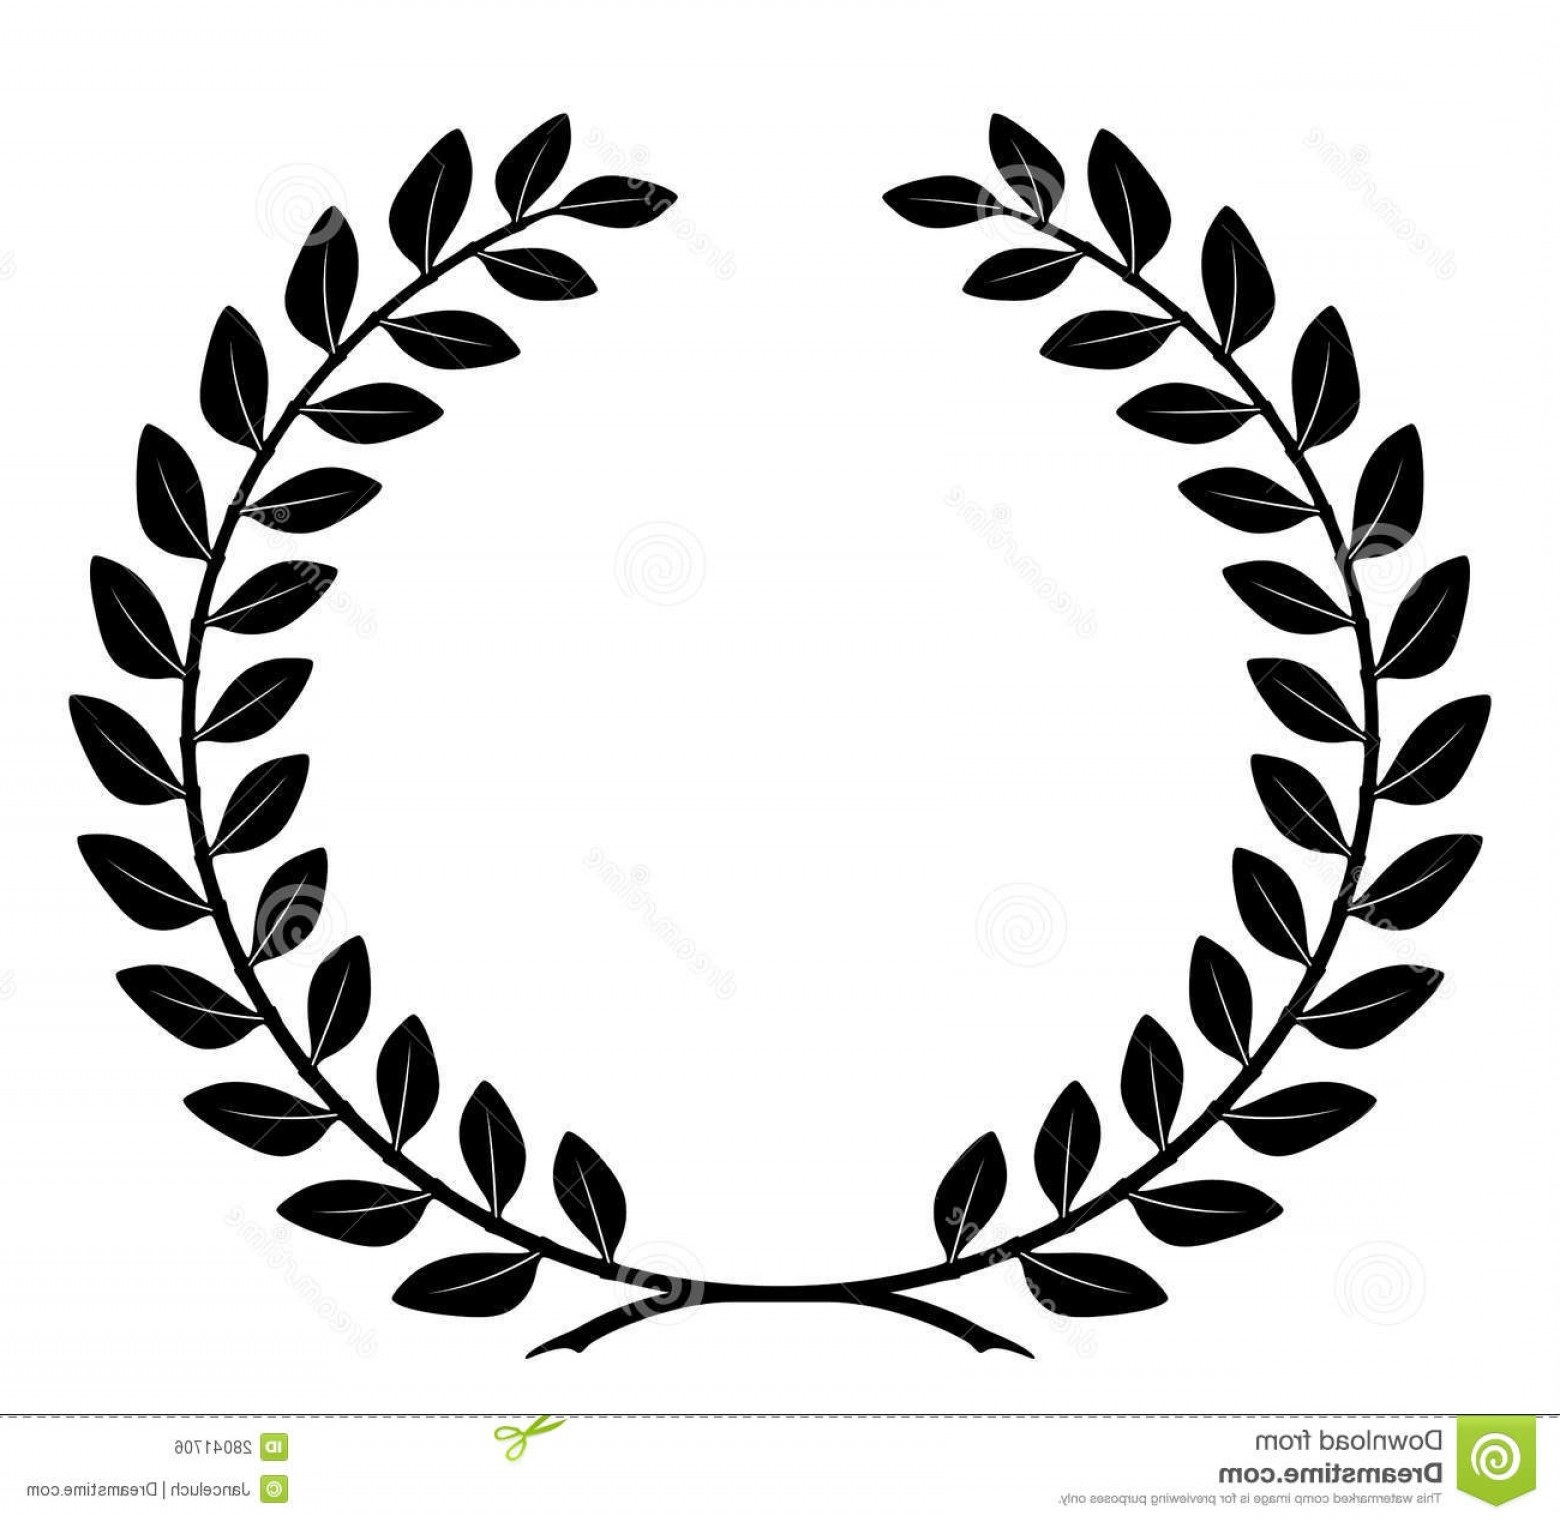 Award Vector Leaves: Royalty Free Stock Image Laurel Wreath Detailed Branches Vector Image